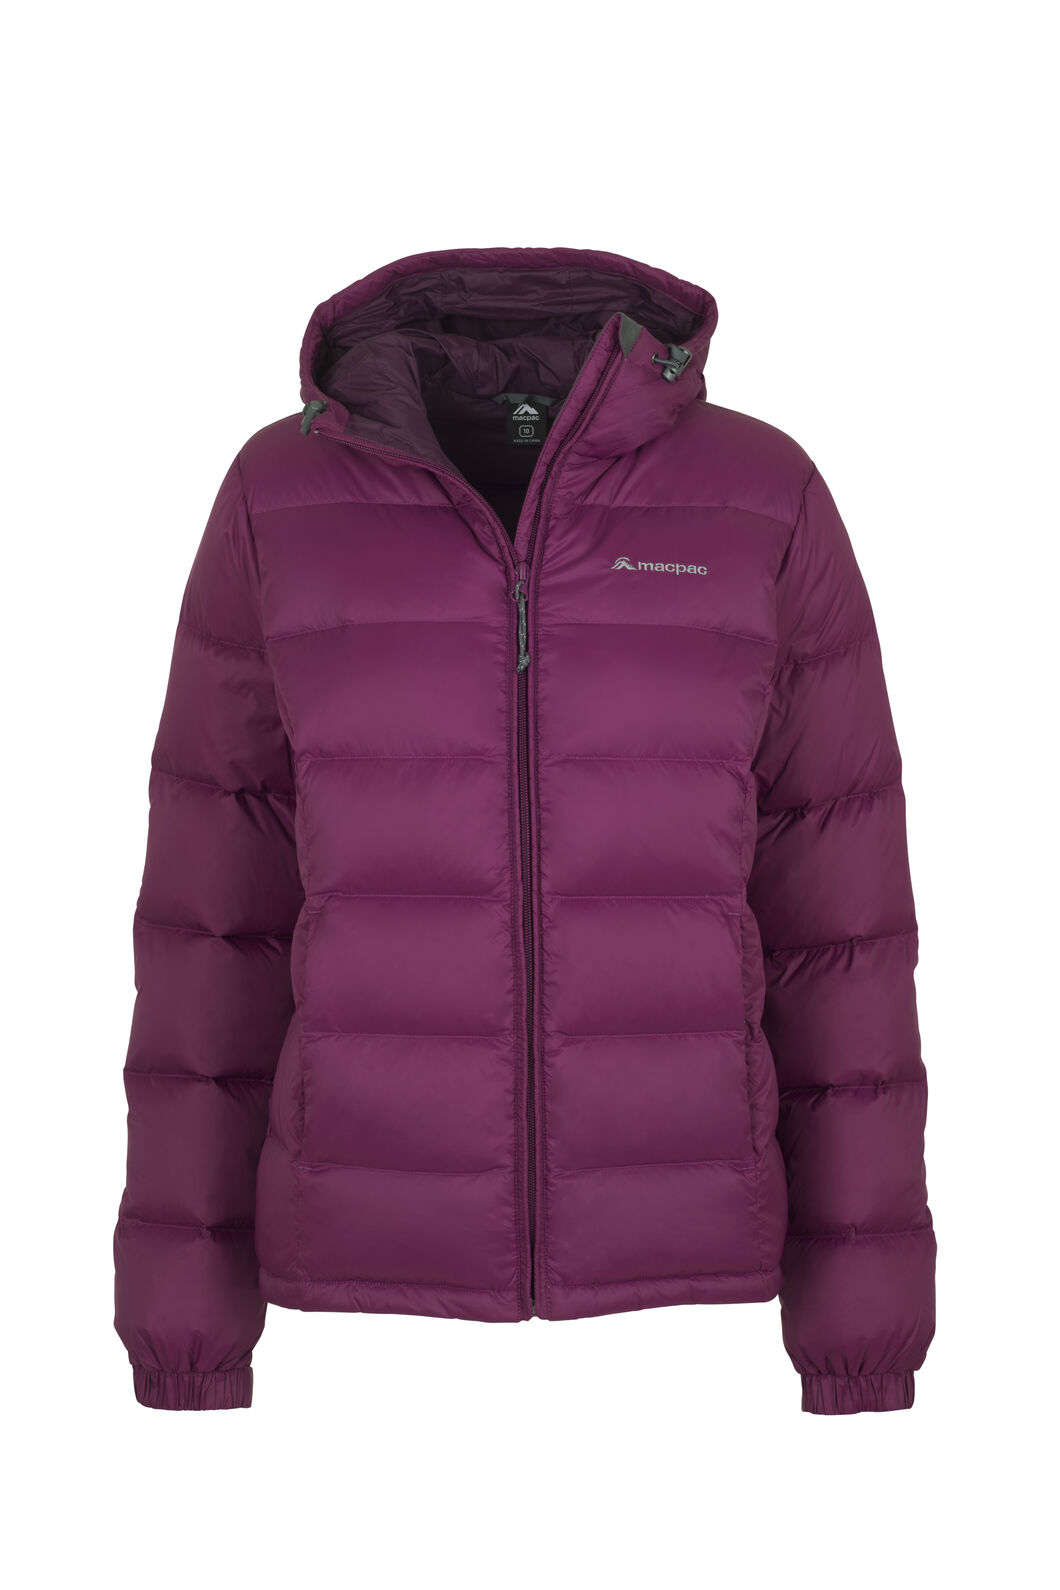 Macpac Halo Hooded Down Jacket - Women's, Magenta, hi-res